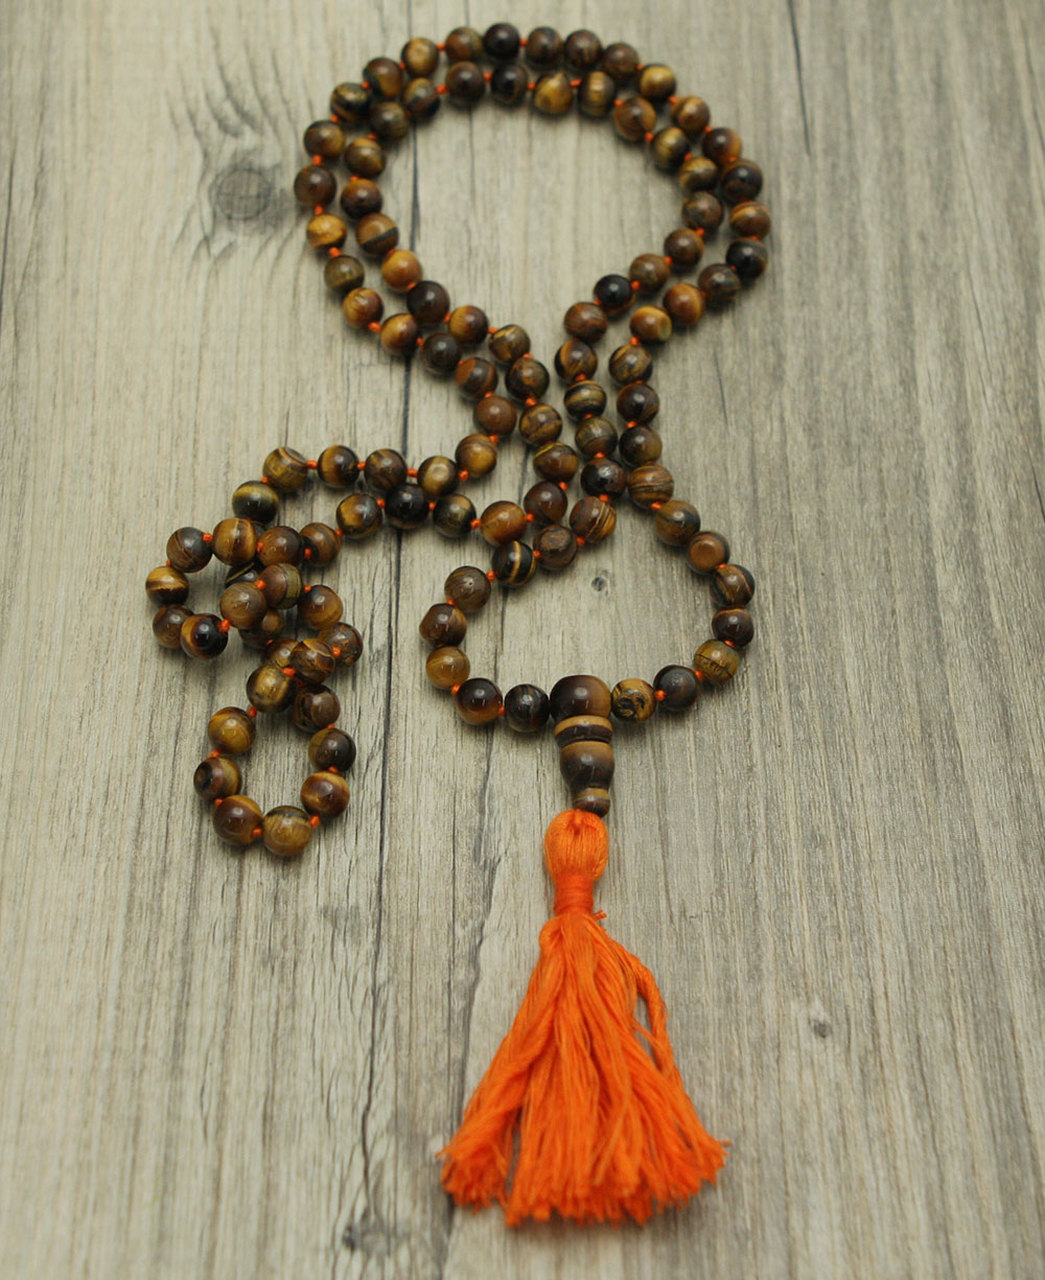 Knotted Tiger Eye Mala, 108 Bead Count